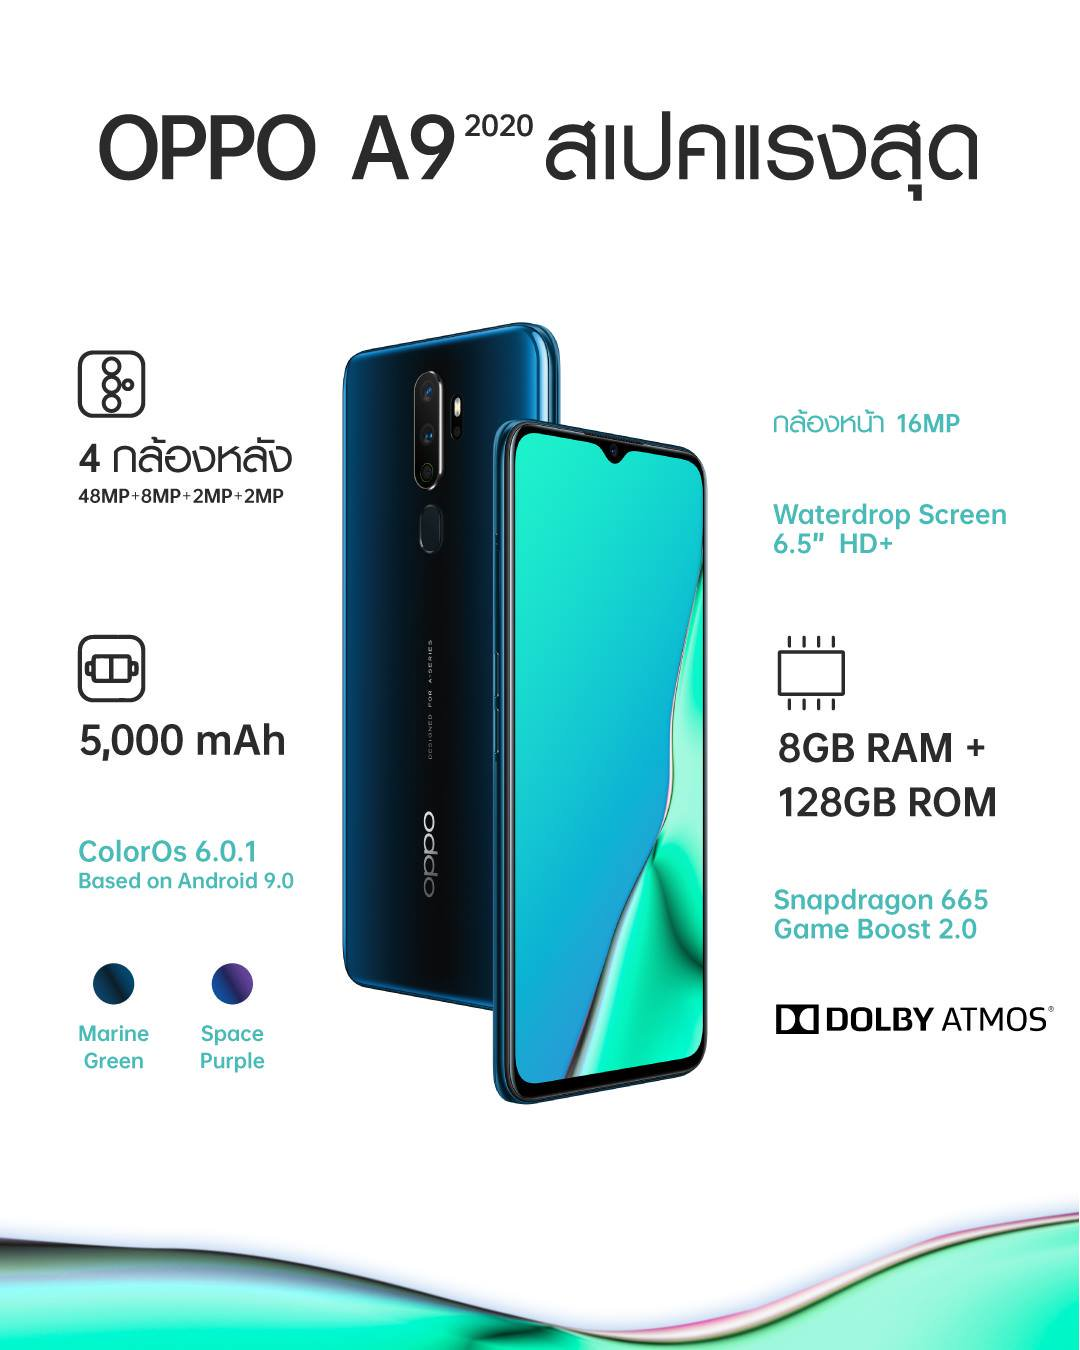 OPPO A9 2020 spec